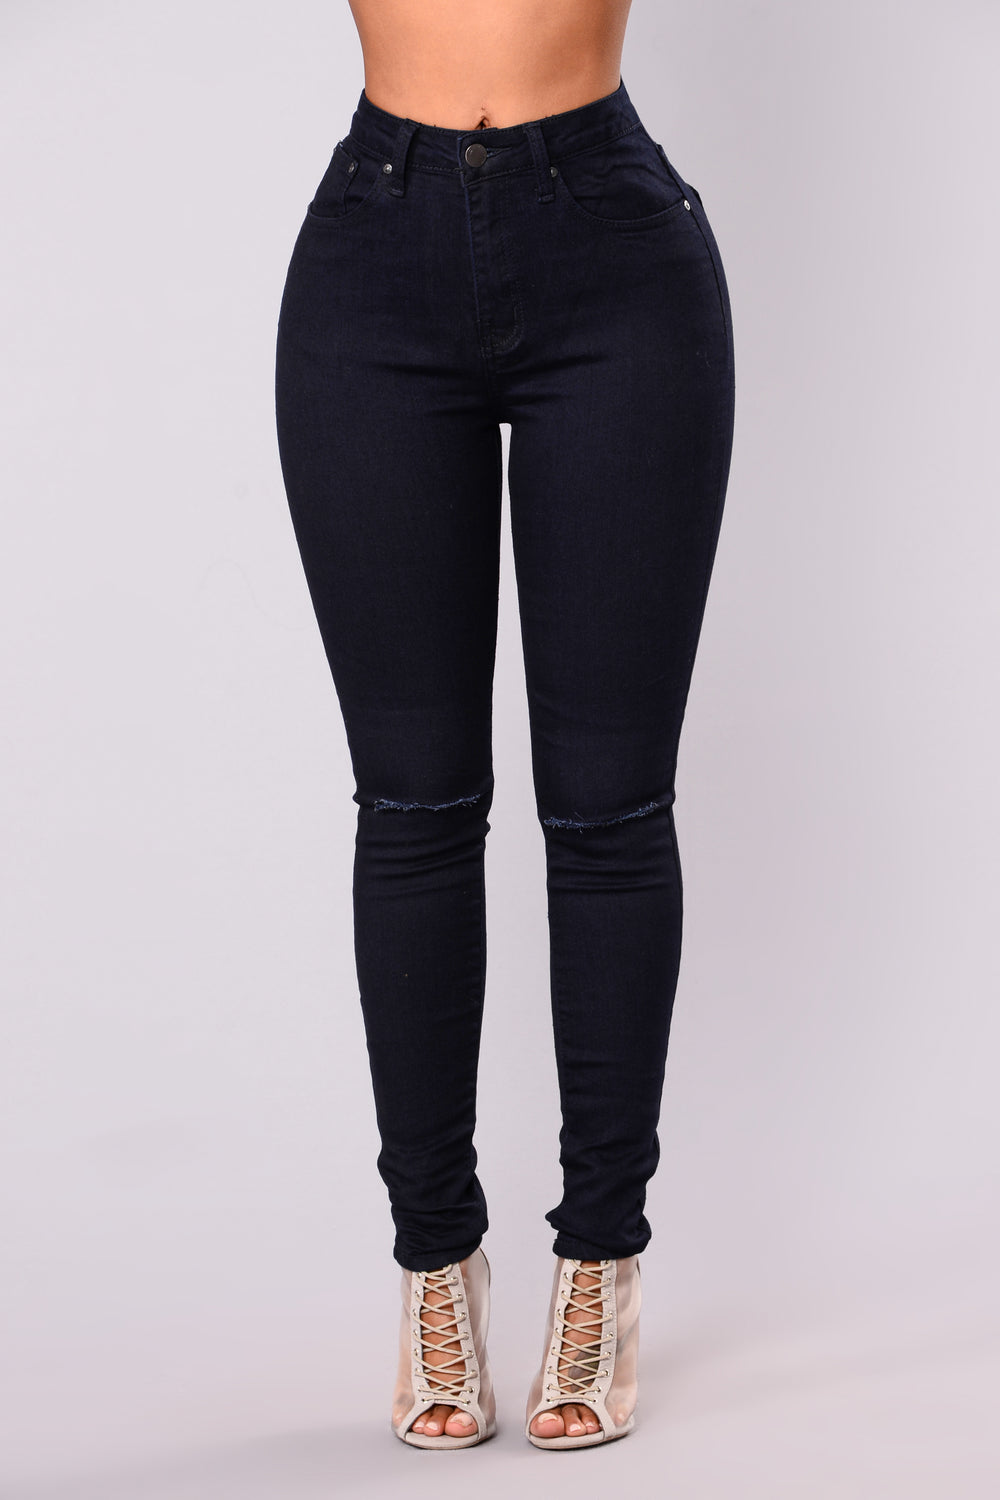 Suvi Skinny Jeans - Dark Denim